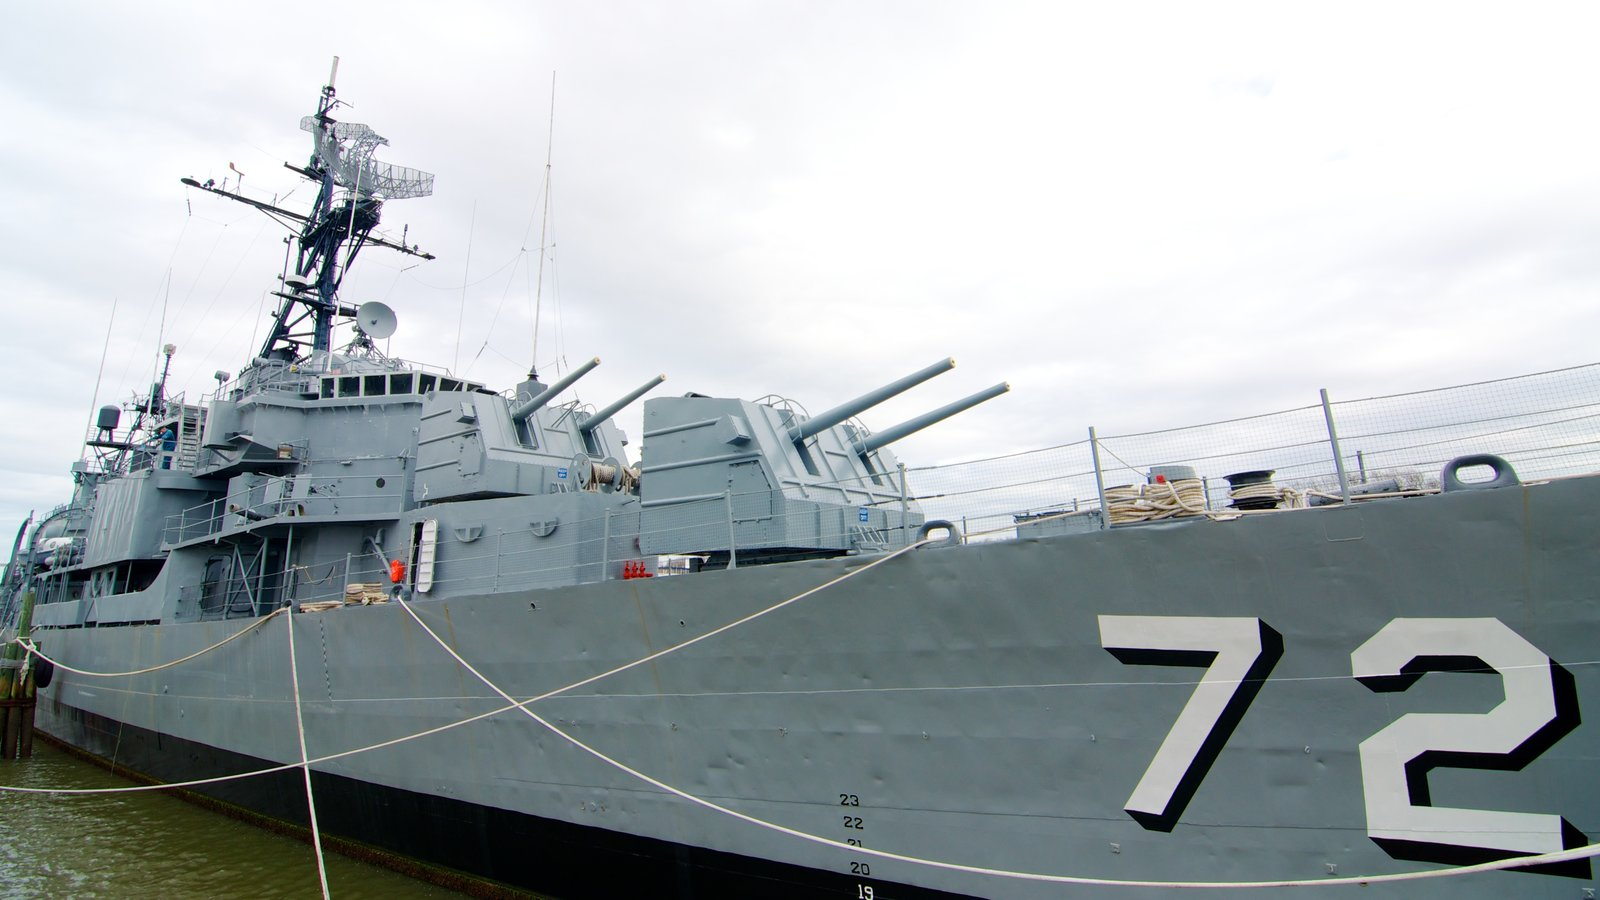 Patriots Point Naval and Maritime Museum que inclui itens militares